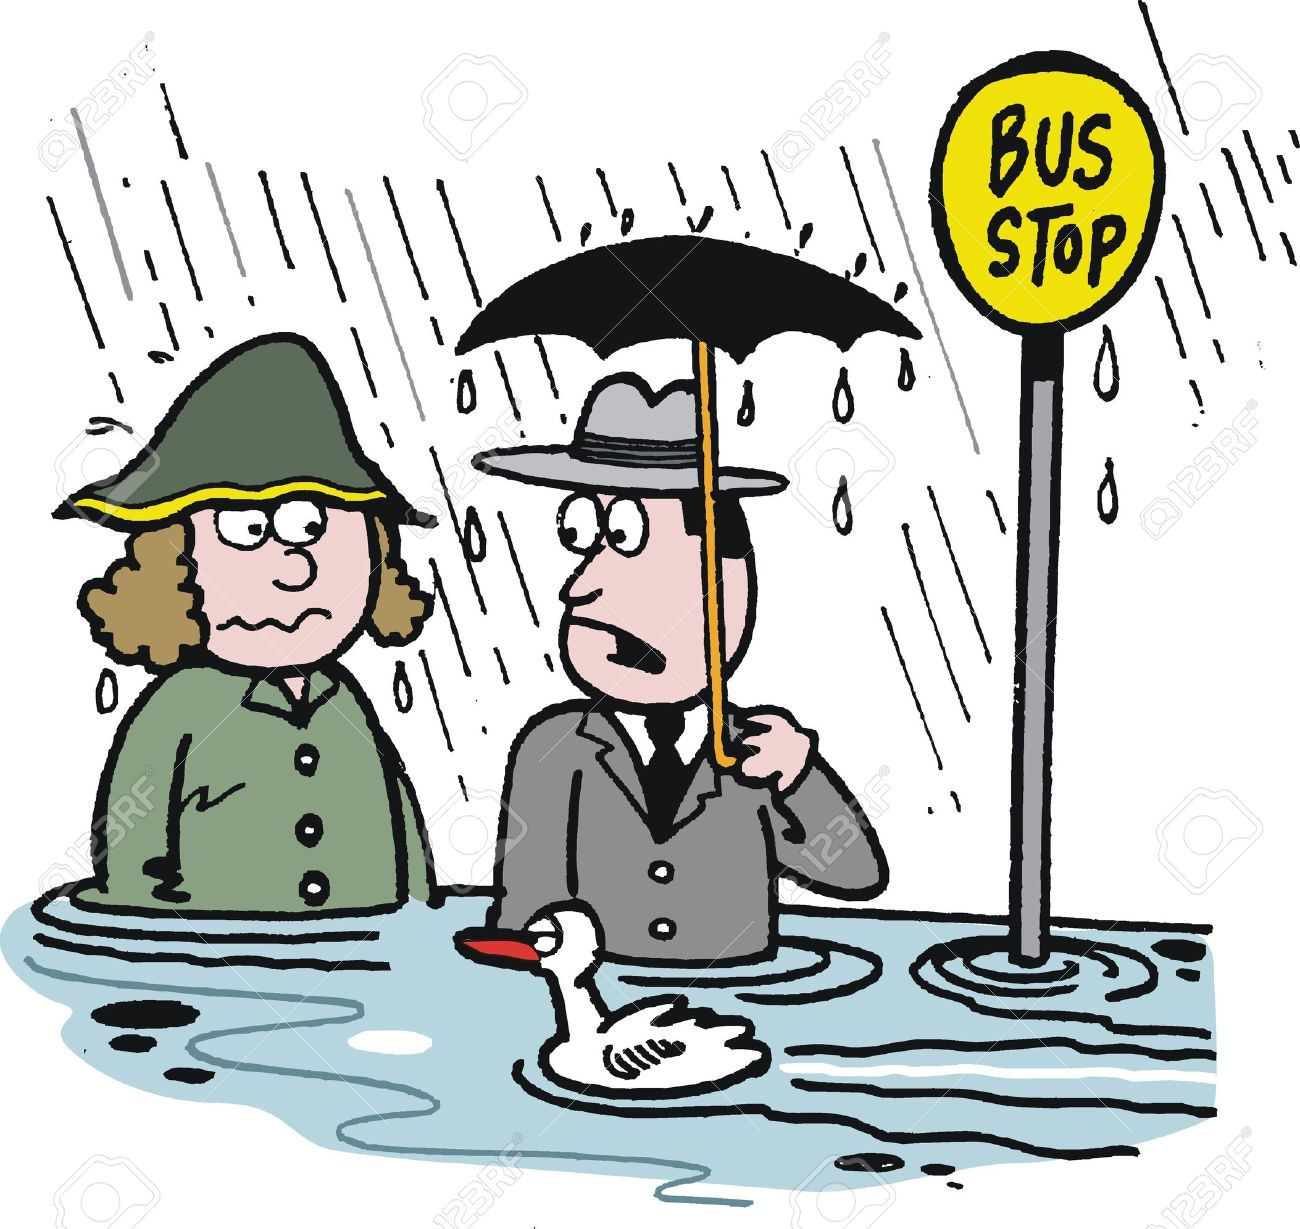 Cartoon Of Man And Woman At Flooded Bus Stop Royalty Free Cliparts.